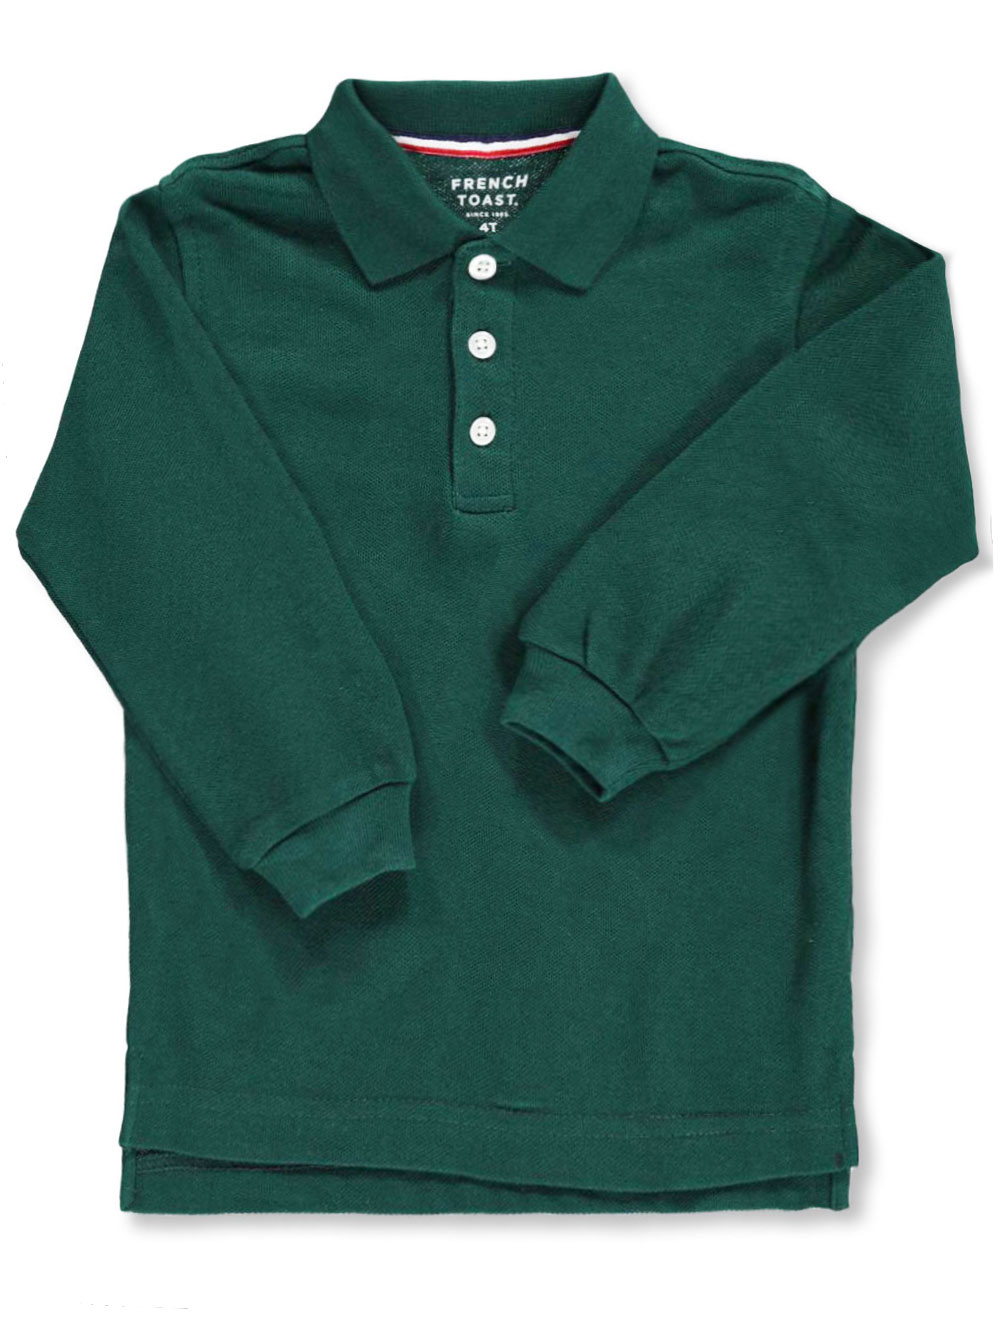 Size 4t Knit Polos for Boys